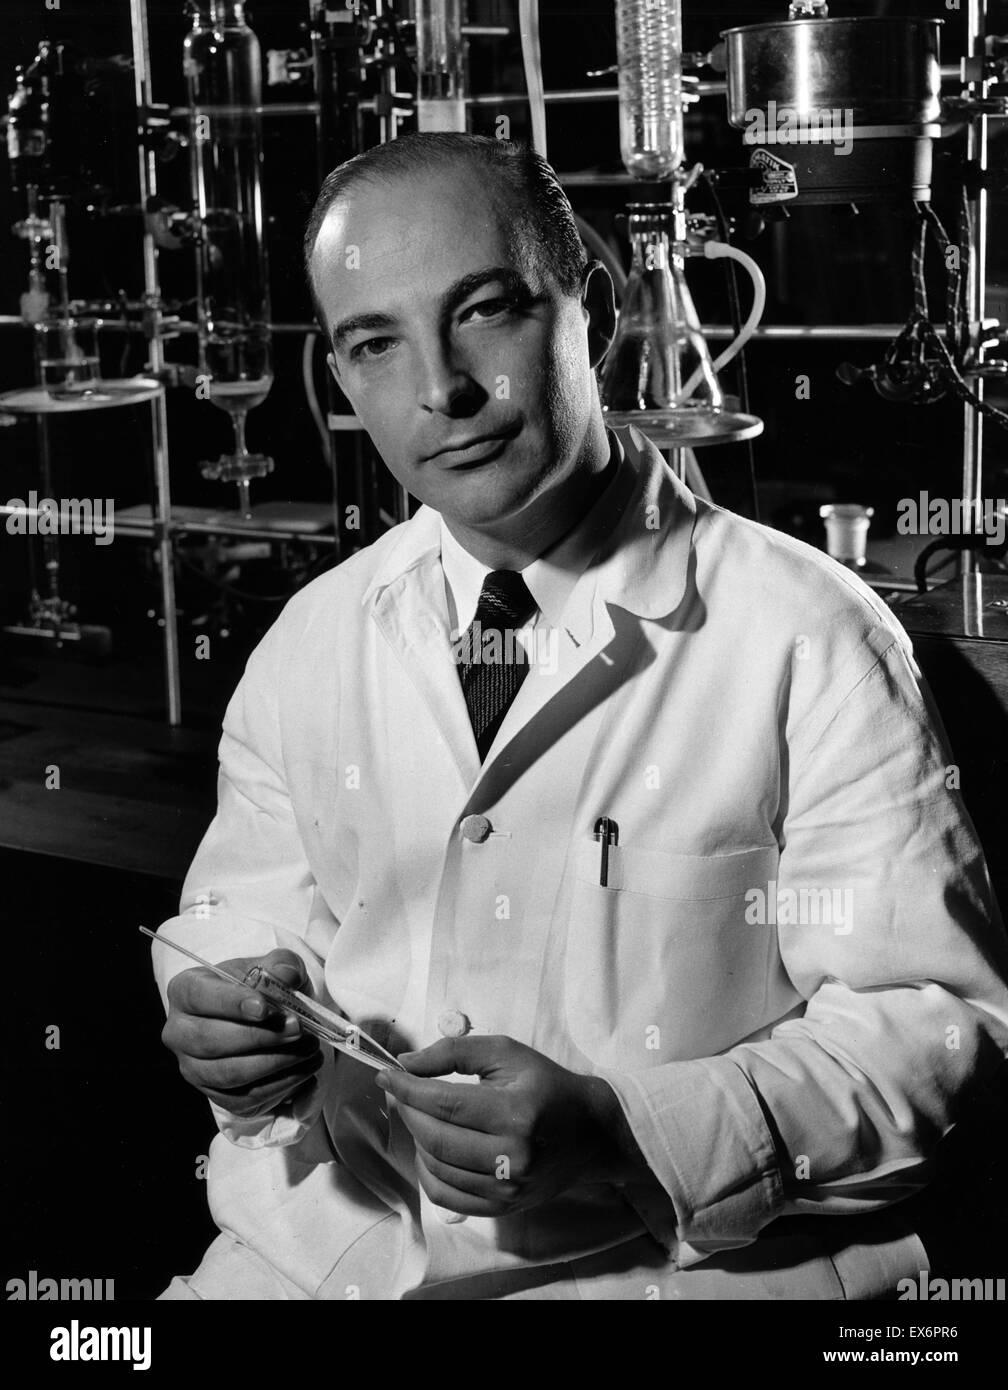 Arthur Kornberg (March 3, 1918 – October 26, 2007), American biochemist who won the Nobel Prize in Physiology or - Stock Image